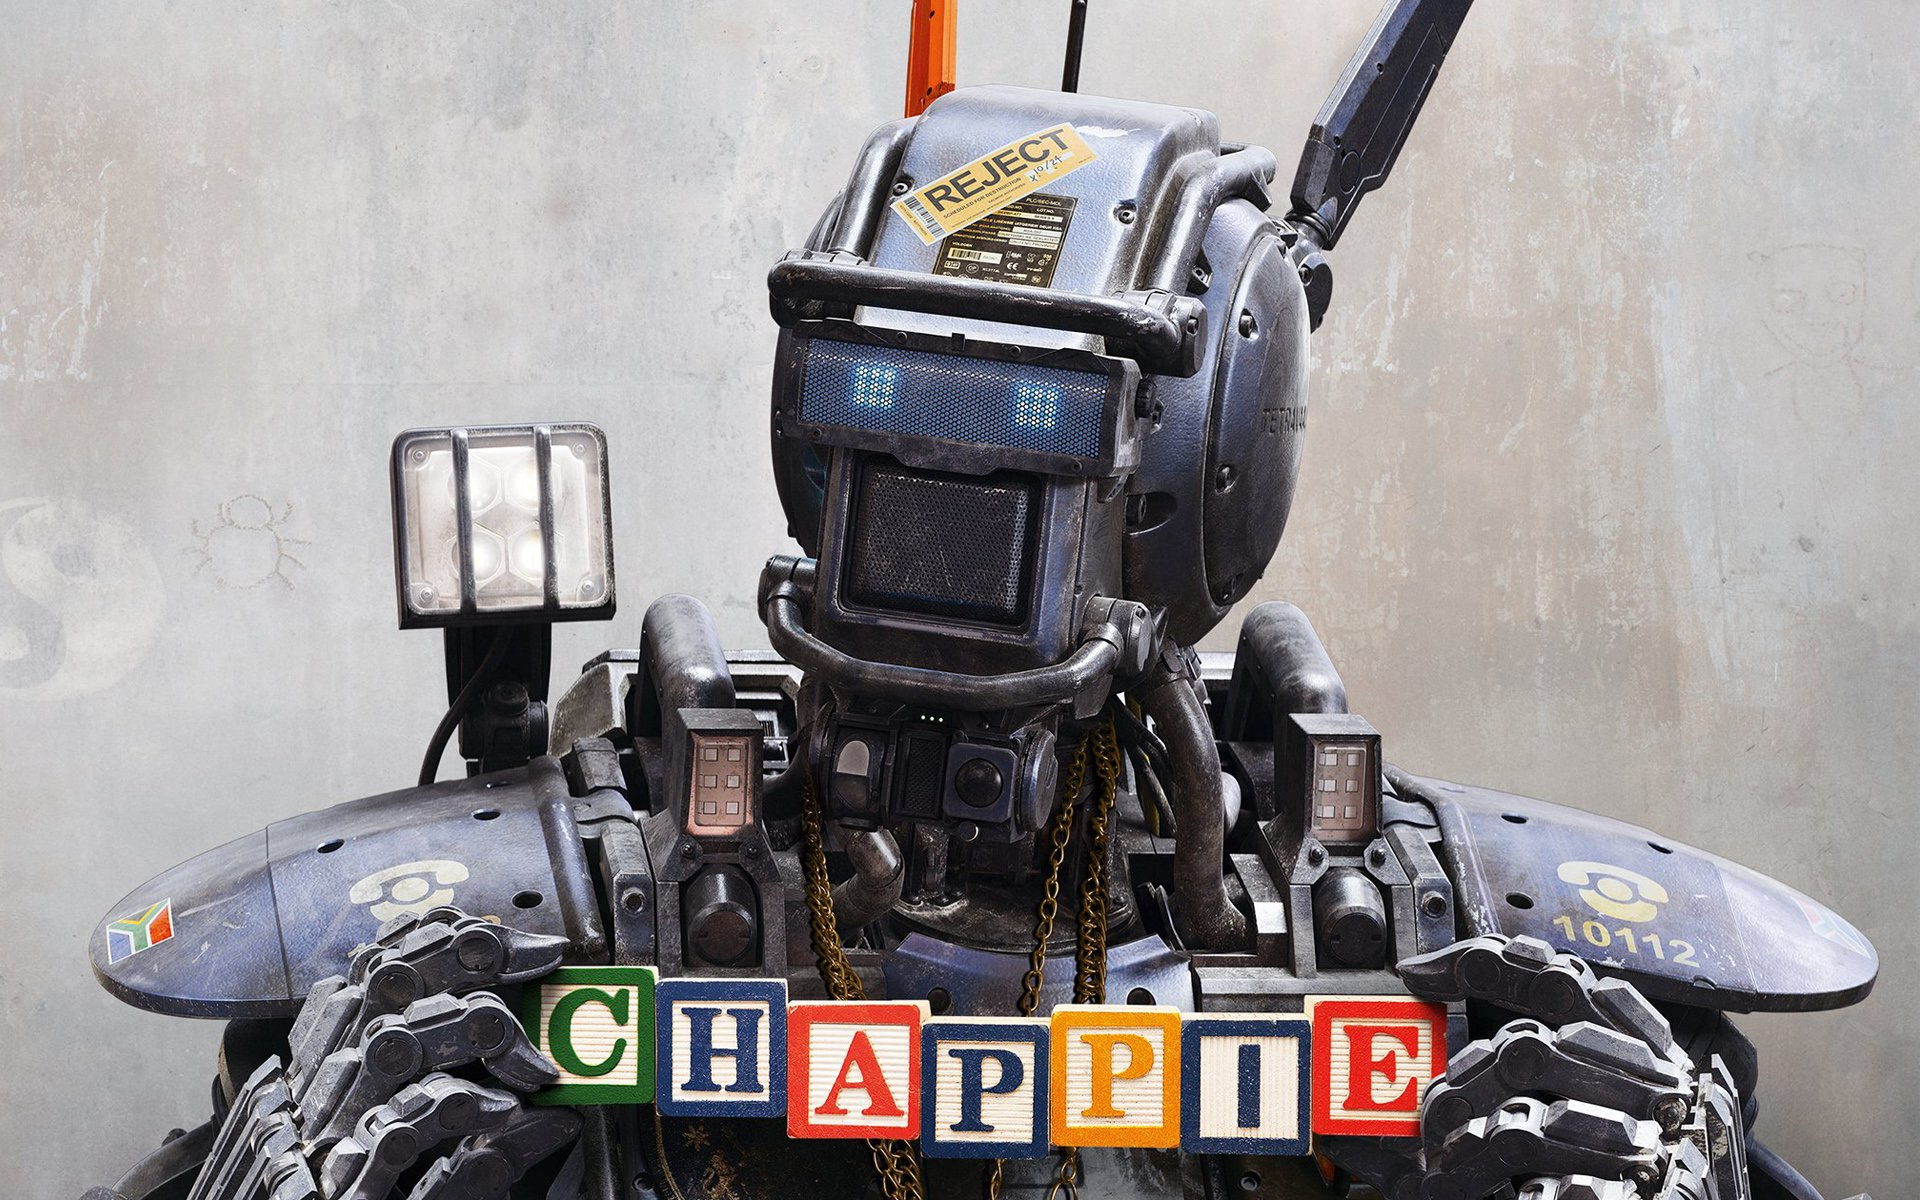 Chappie 2015 Movie Wallpapers HD Wallpapers 1920x1200